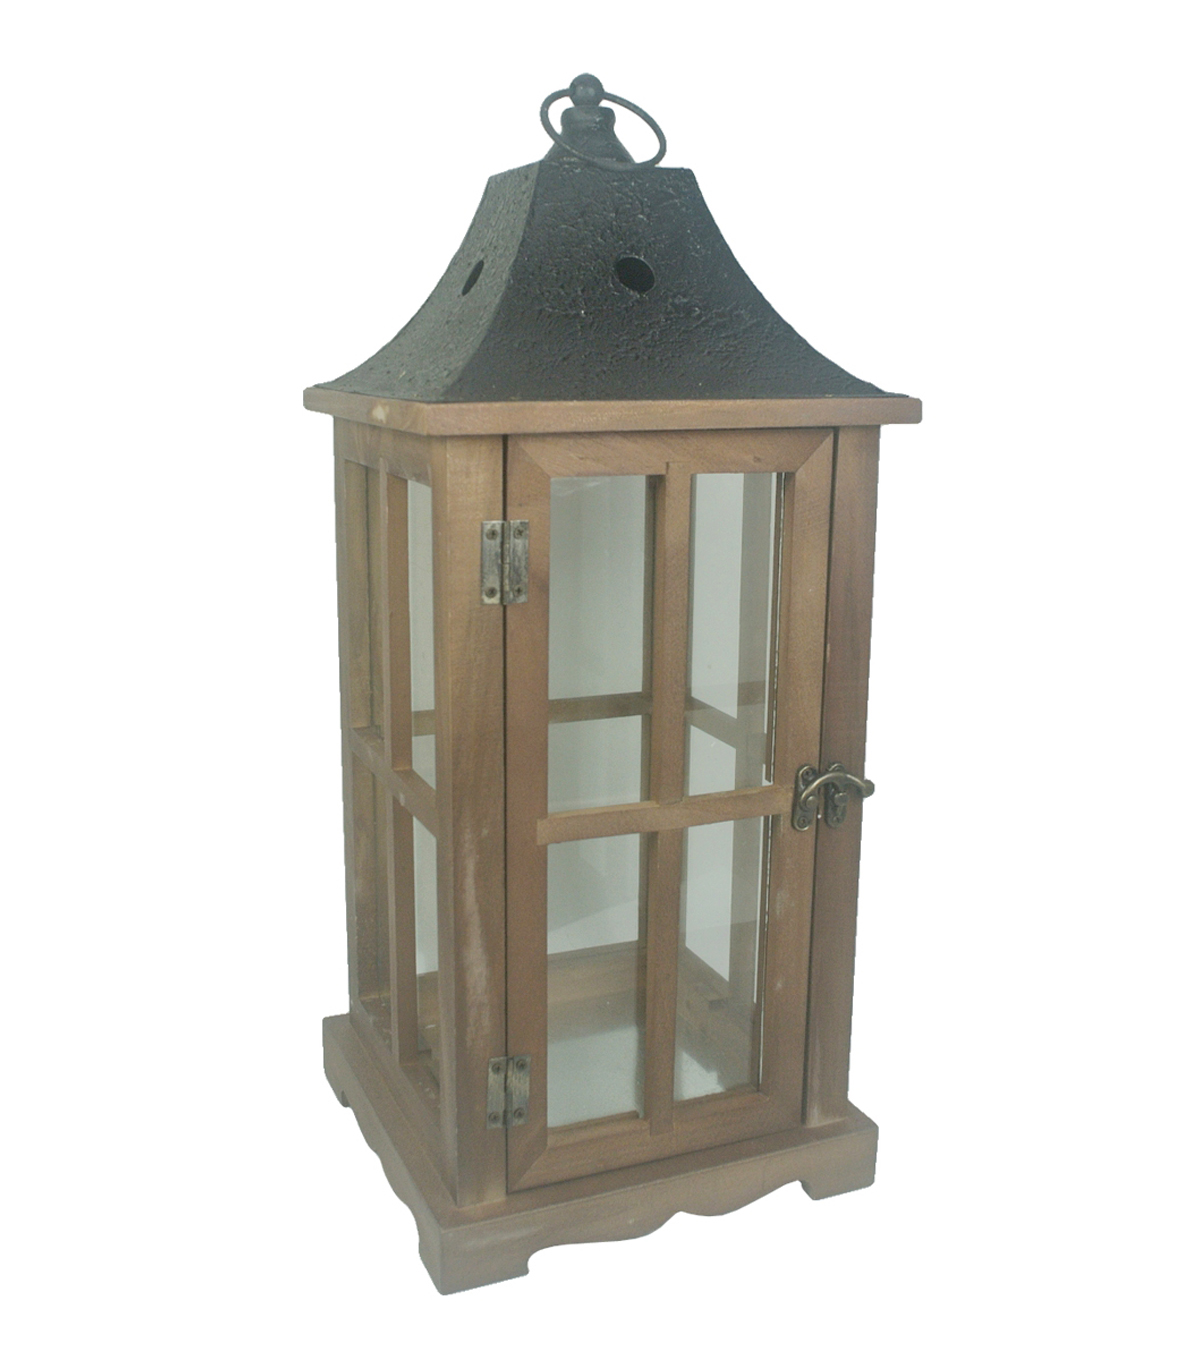 Hudson 43™ Candle & Light Collection Wooden Lantern W Iron Roof Lg